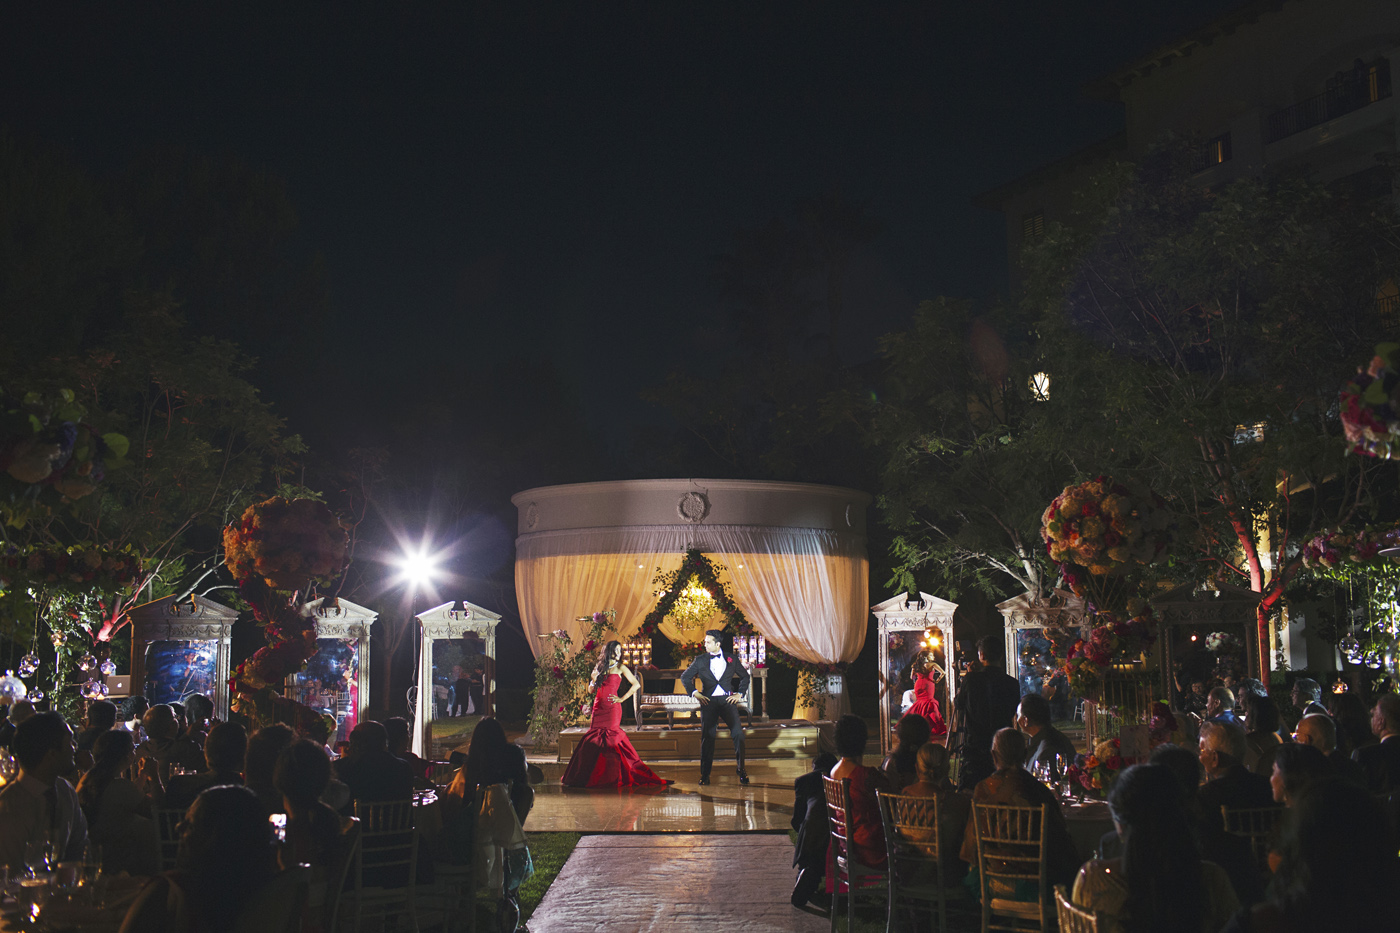 73DukePhotography_DukeImages_weddings_D2_IMG_2653 (1).jpg